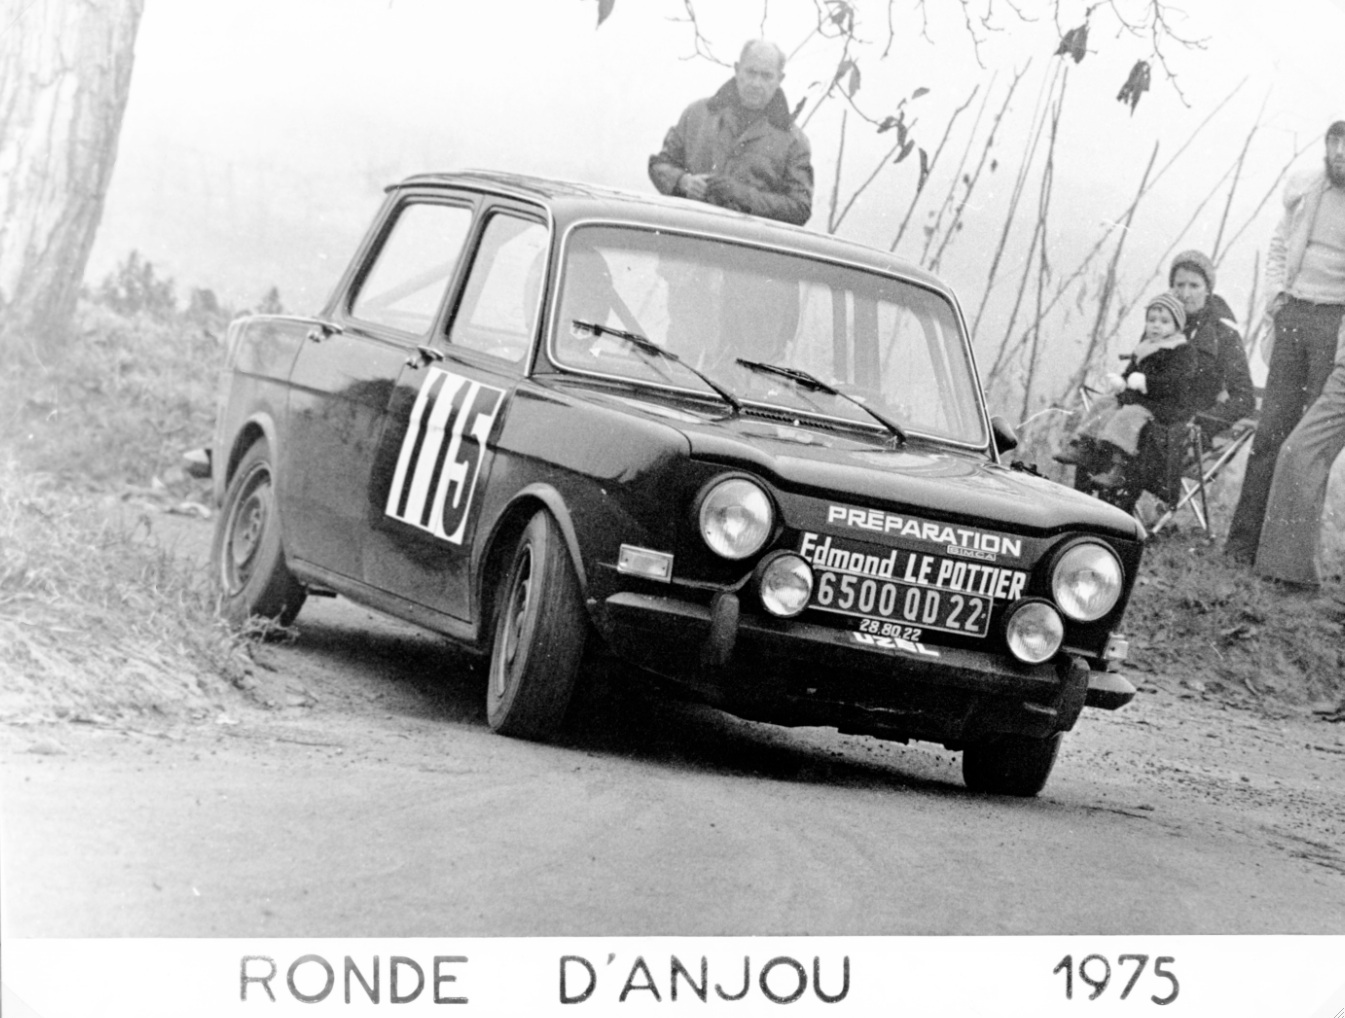 1975 SIMCA 1000 R2 FOURNIER-LAROQUE ANJOU 1